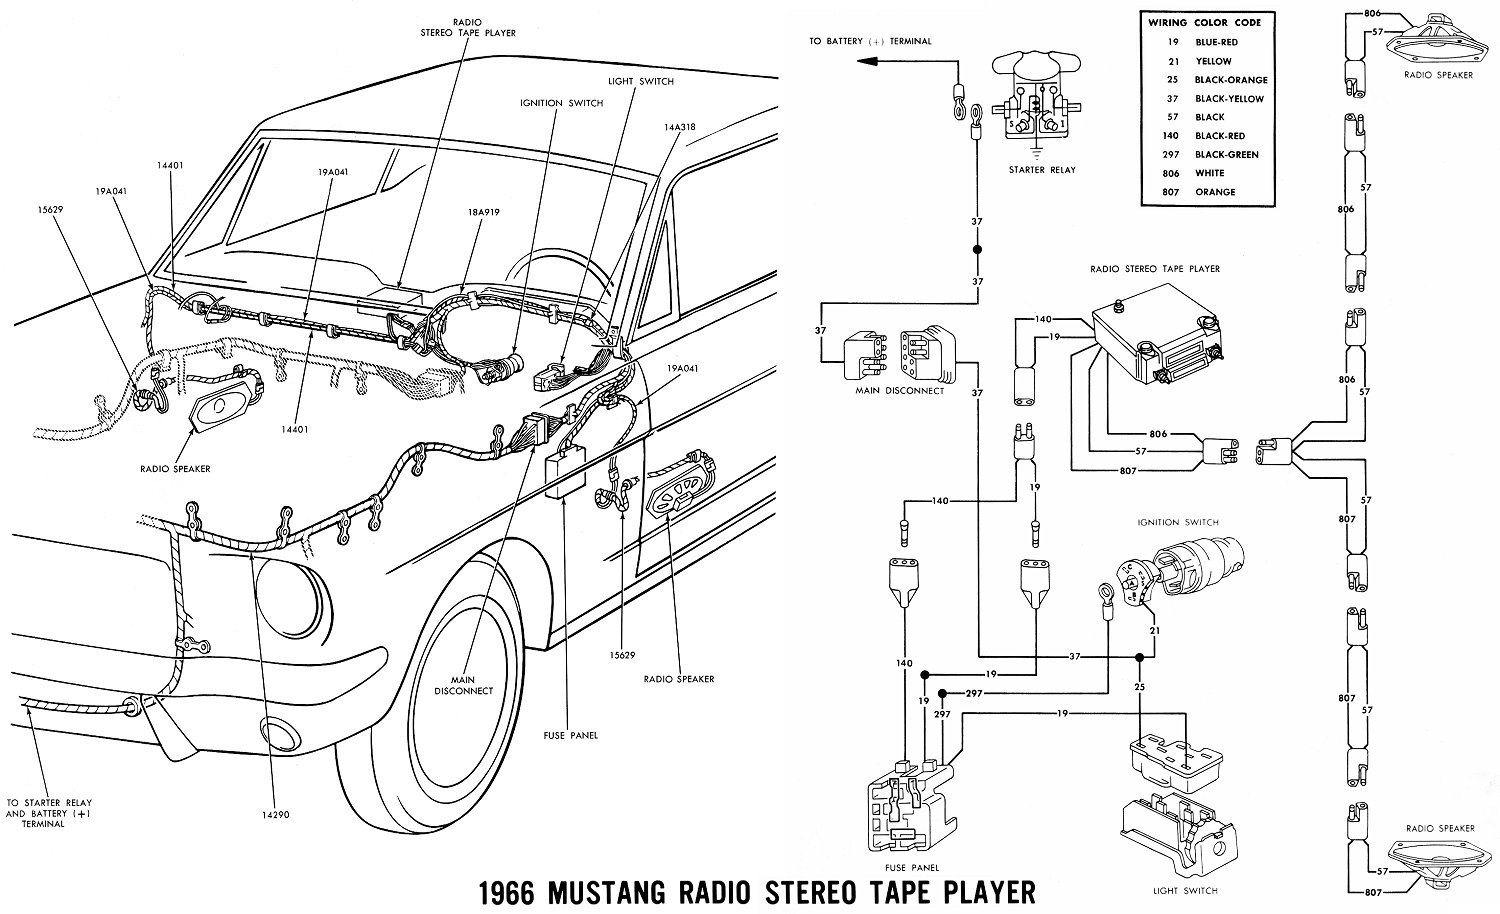 66stereo 66 mustang wiring diagram radio tape 66 mustang turn signal wiring 1965 mustang turn signal wiring diagram at crackthecode.co